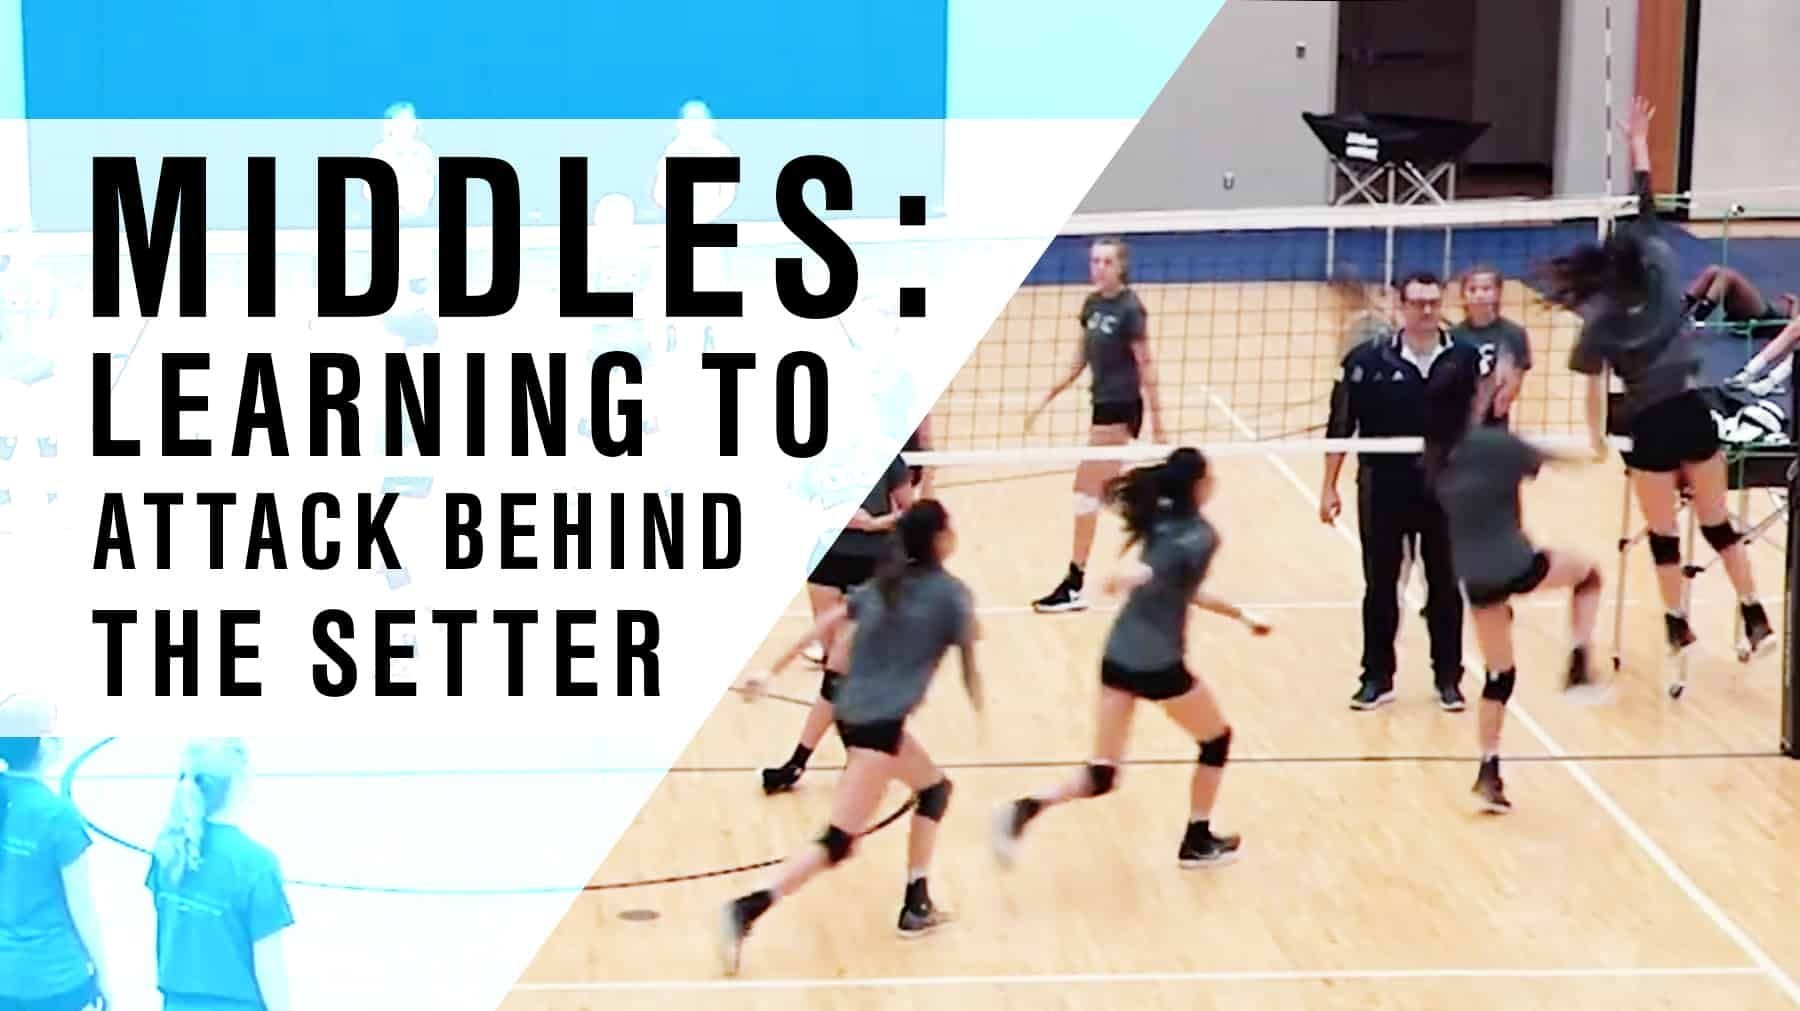 Middles Learning To Attack Behind The Setter Coaching Volleyball Volleyball Skills Volleyball